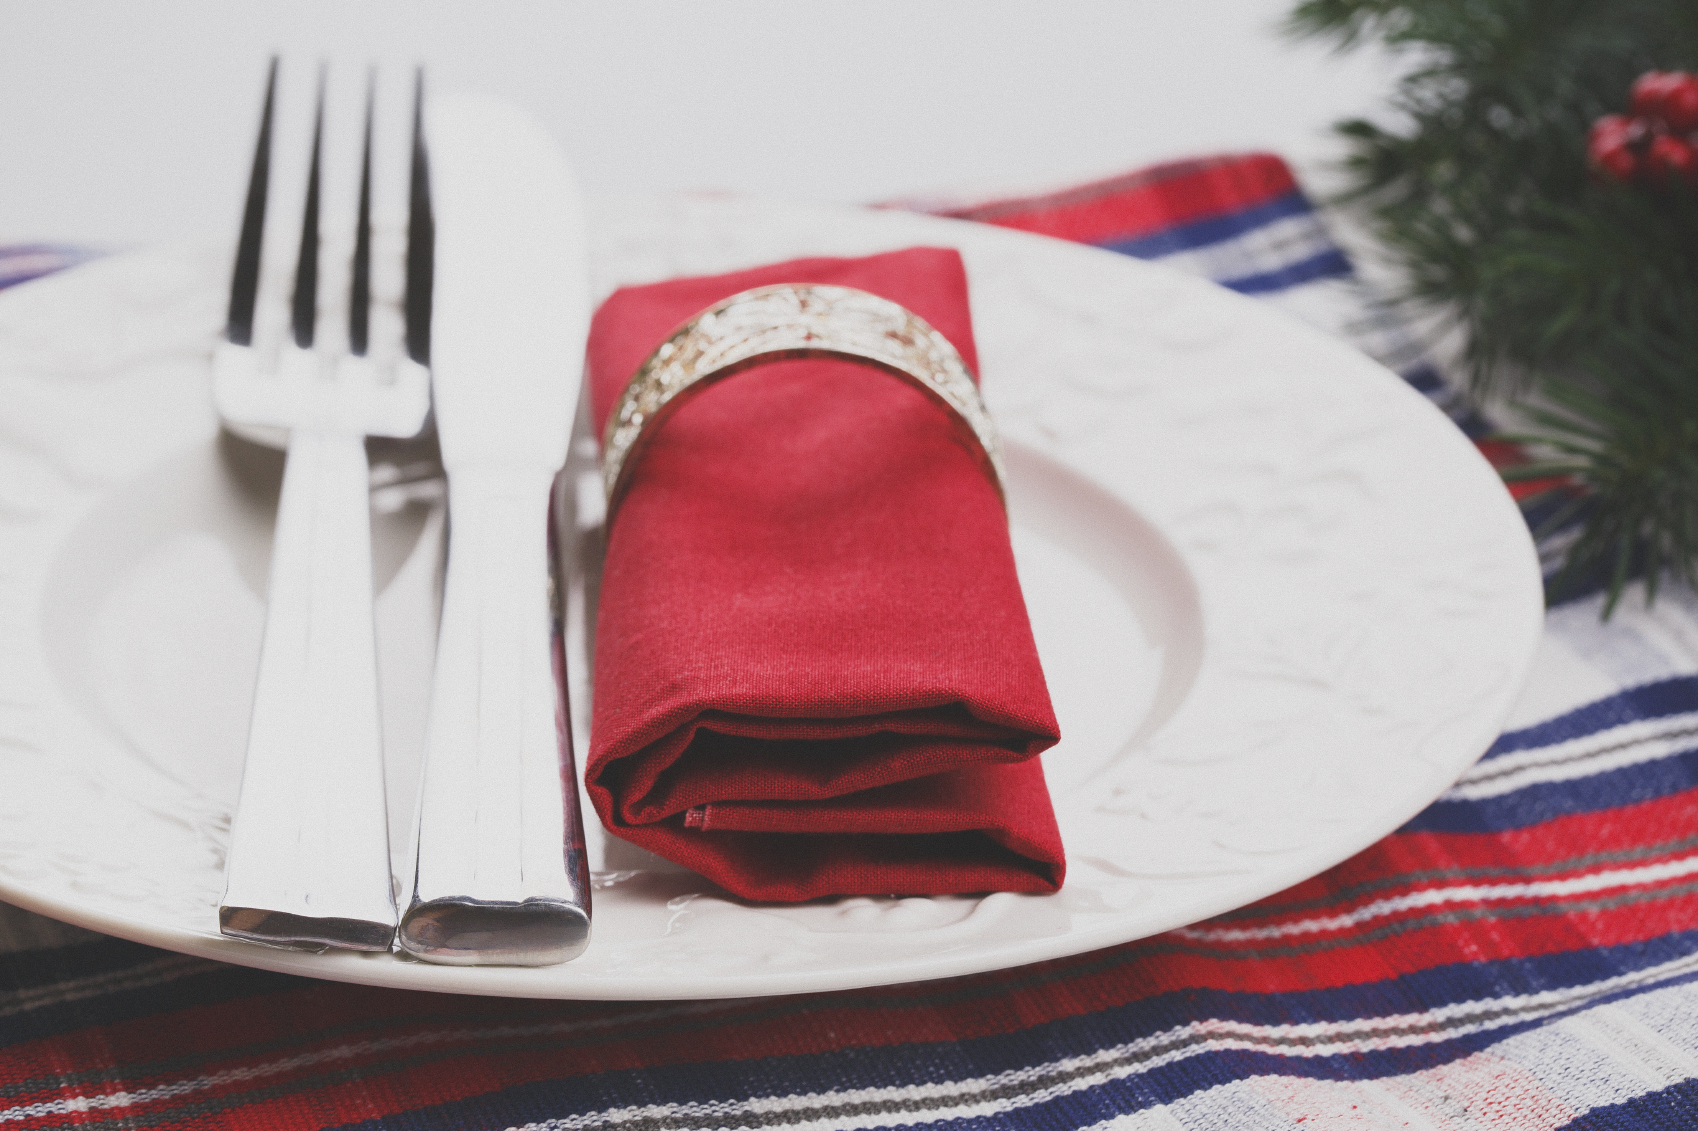 Table linens for the holidays and beyond